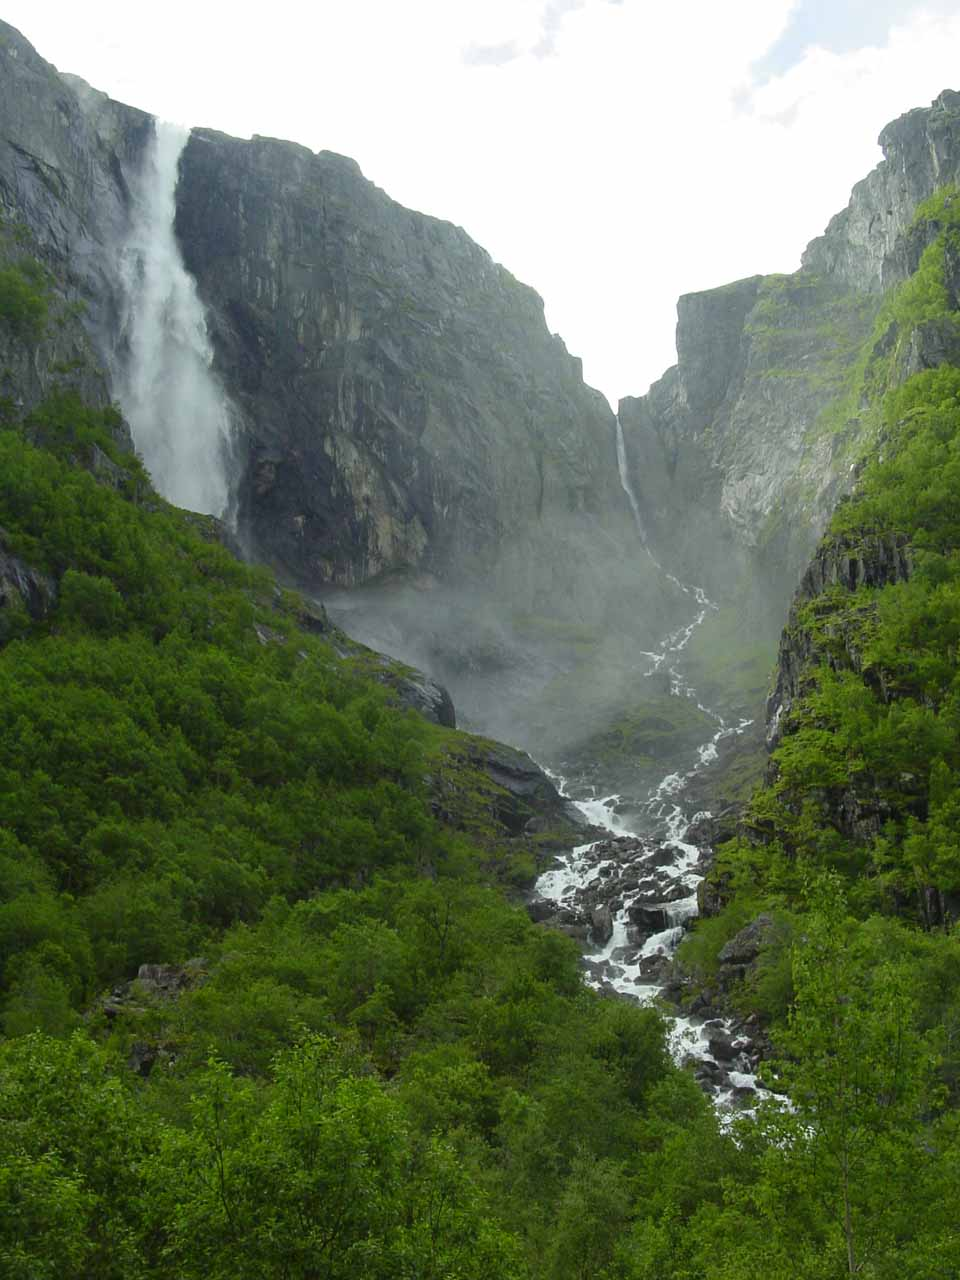 Finally a somewhat cleaner look at Skykkjedalsfossen without the annoying power lines